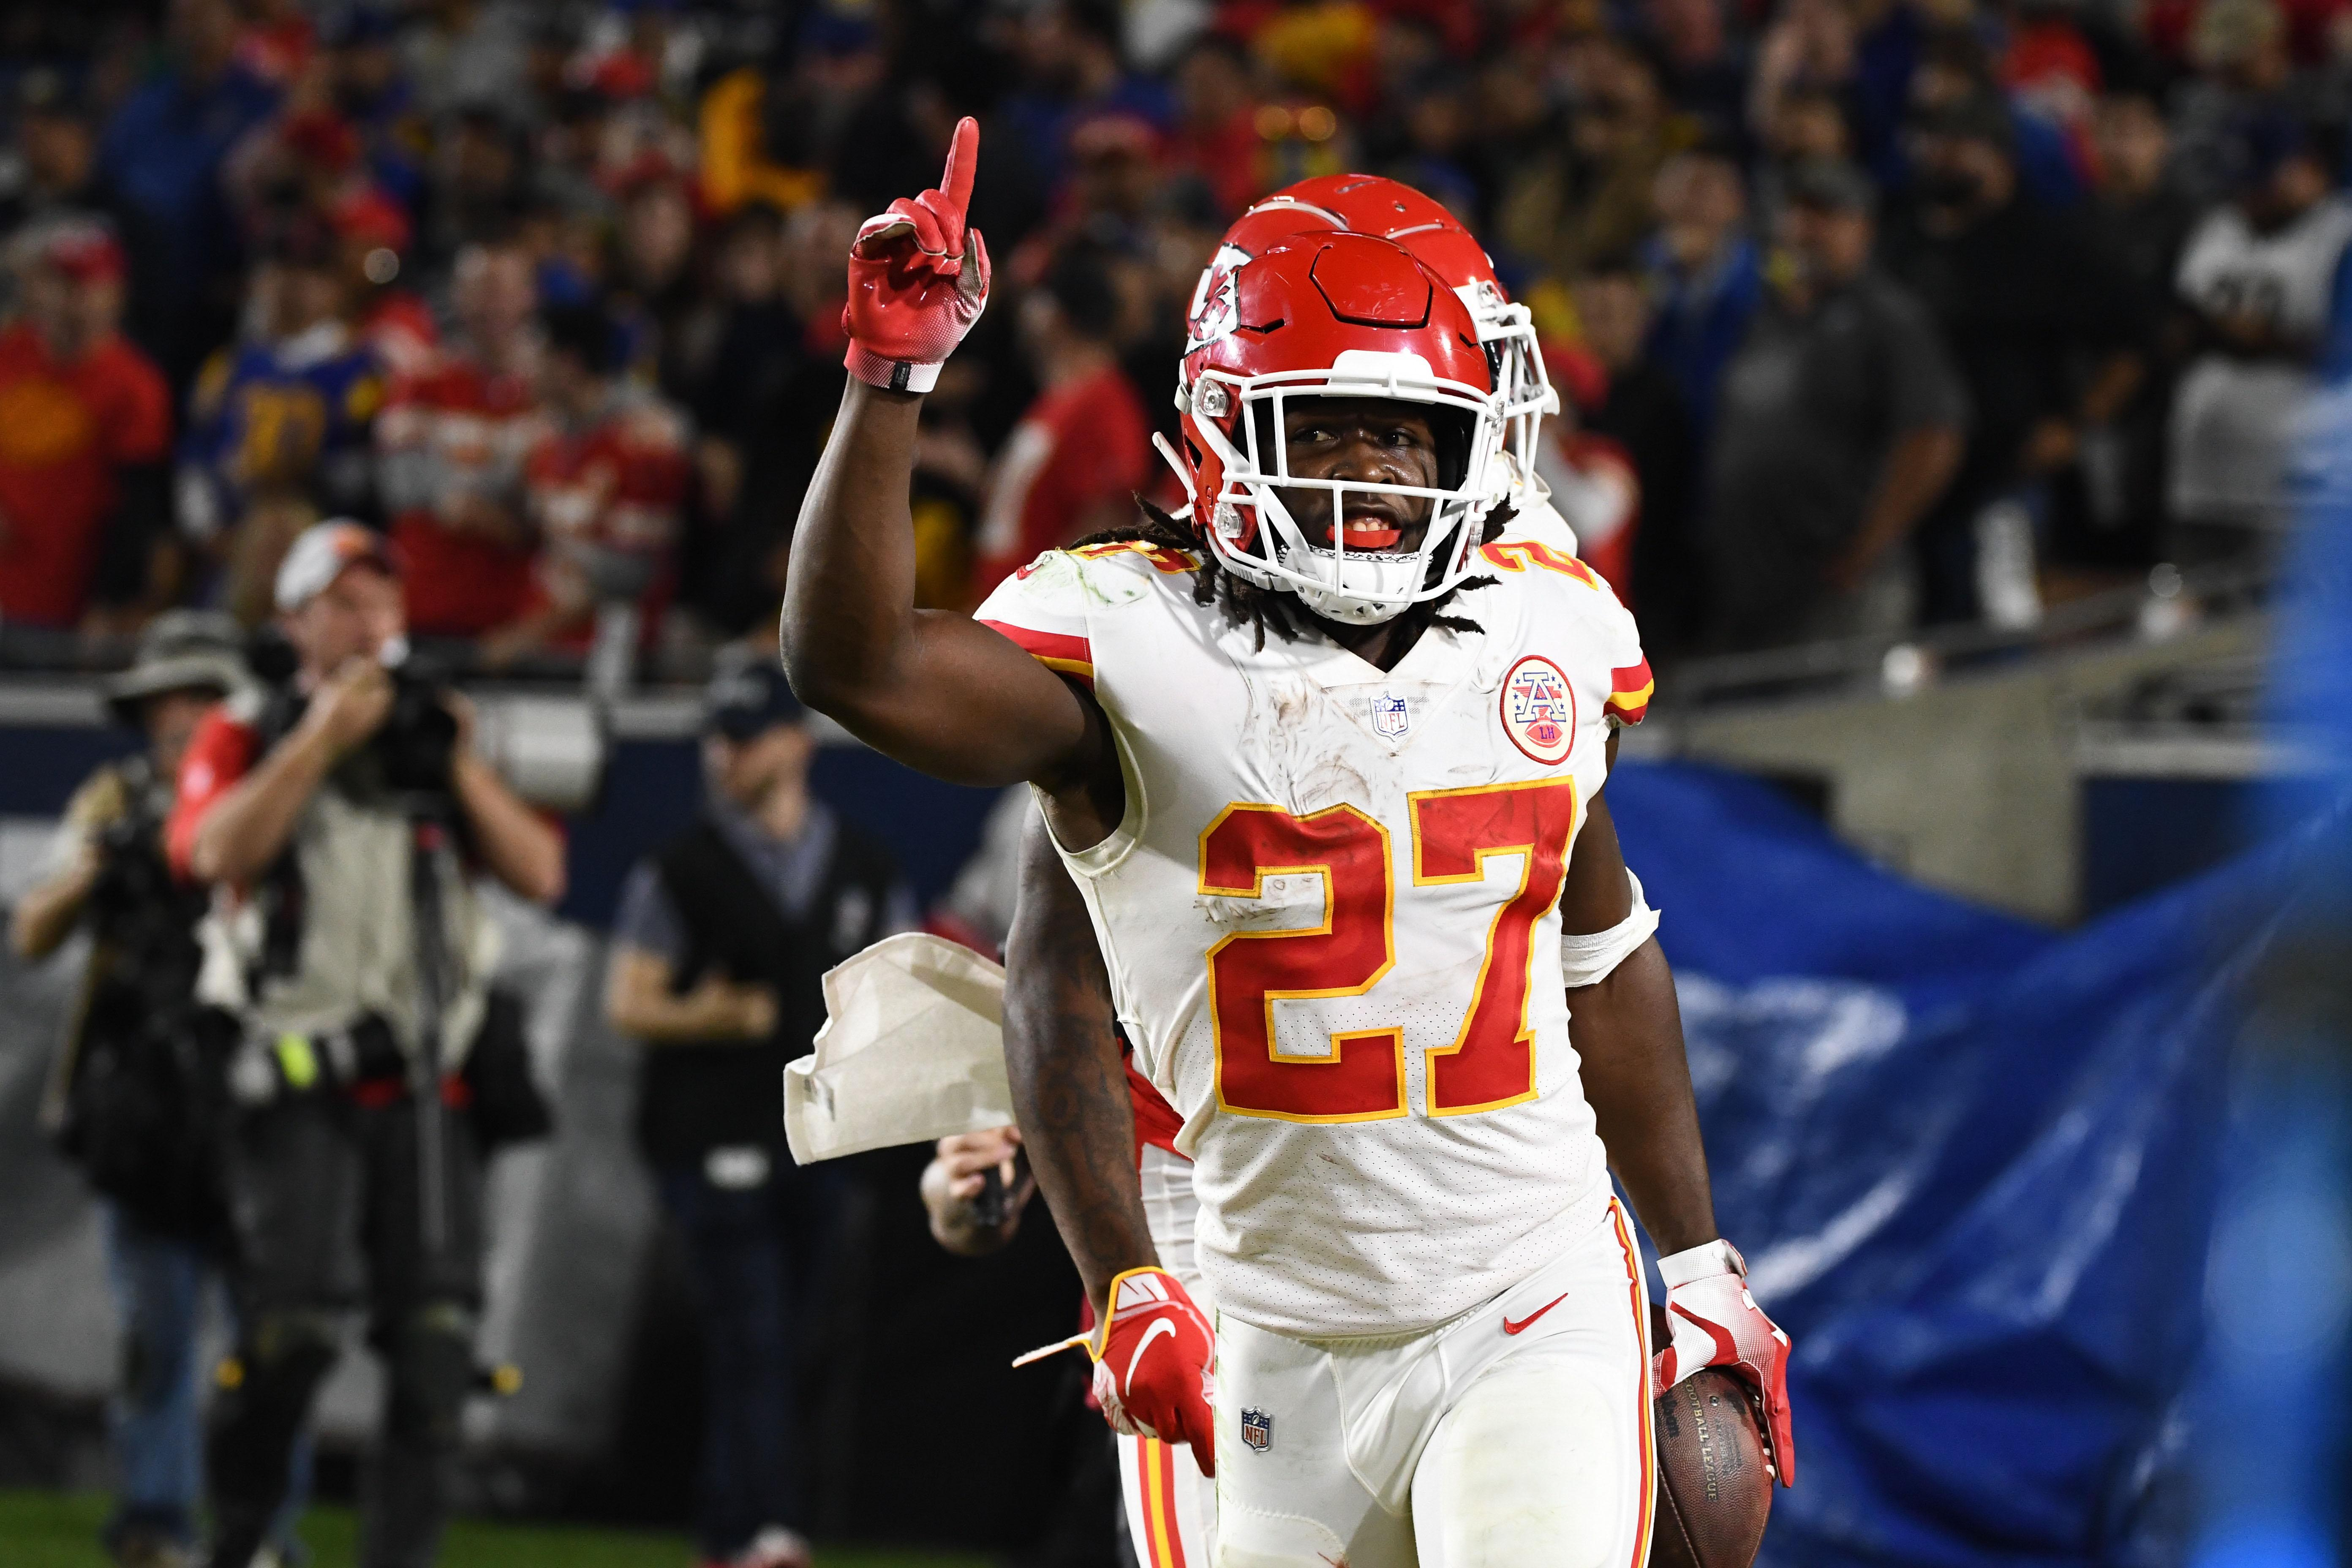 Kareem Hunt is reigning rushing champion in the NFL